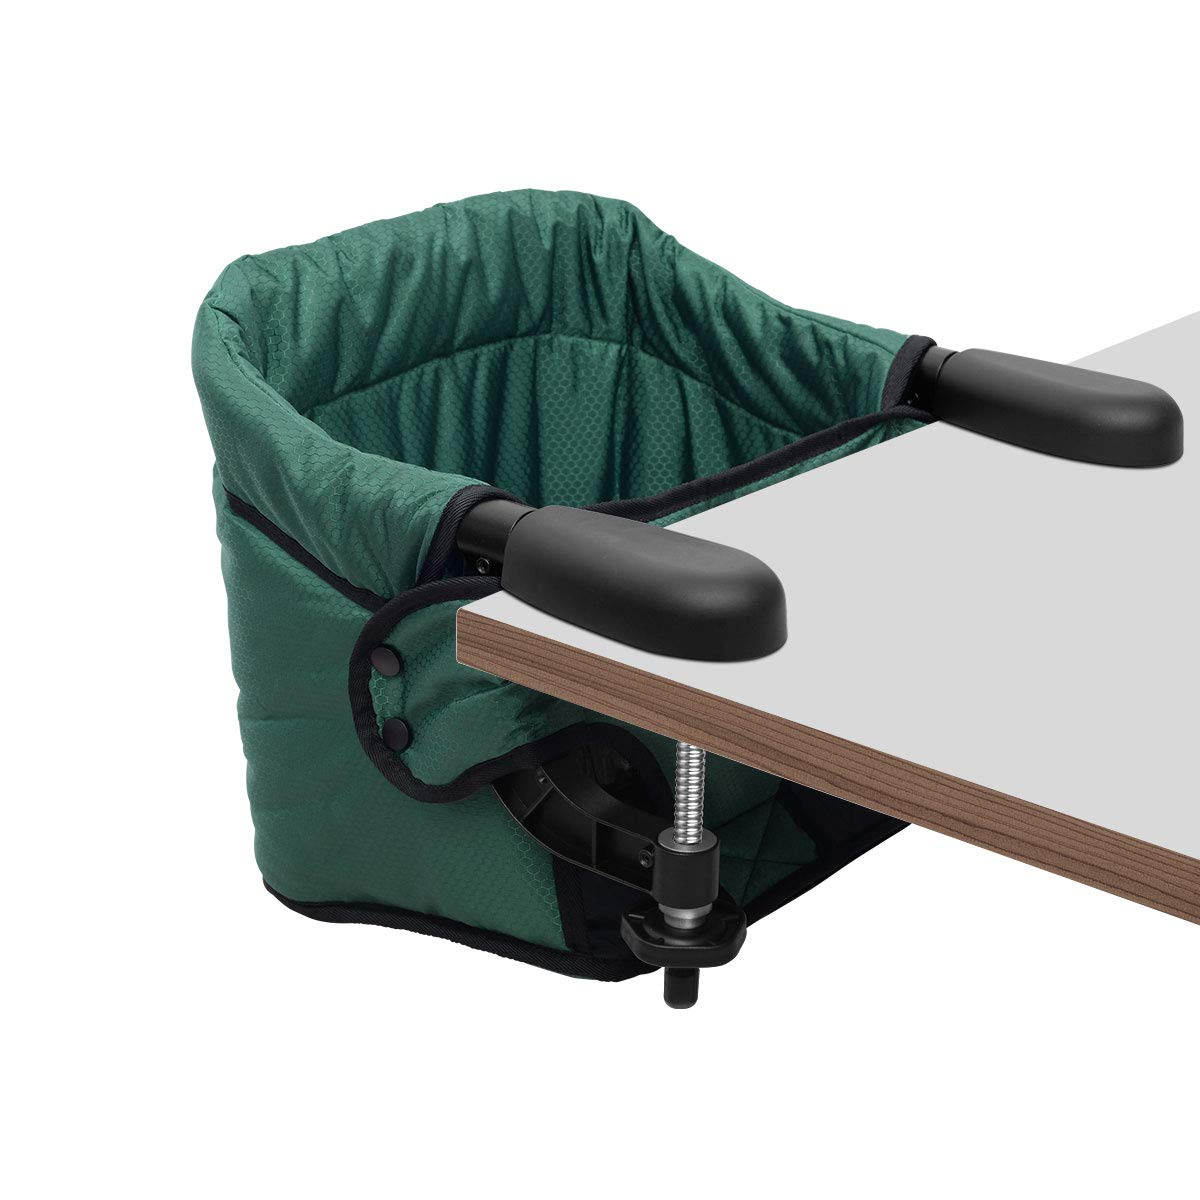 Hook On Chair, Safe and High Load Design, Fold-Flat Storage and Tight Fixing Clip on Table High Chair, Removable Seat Cushion, Attach to Fast Table Chair (Dark Green) by Toogel